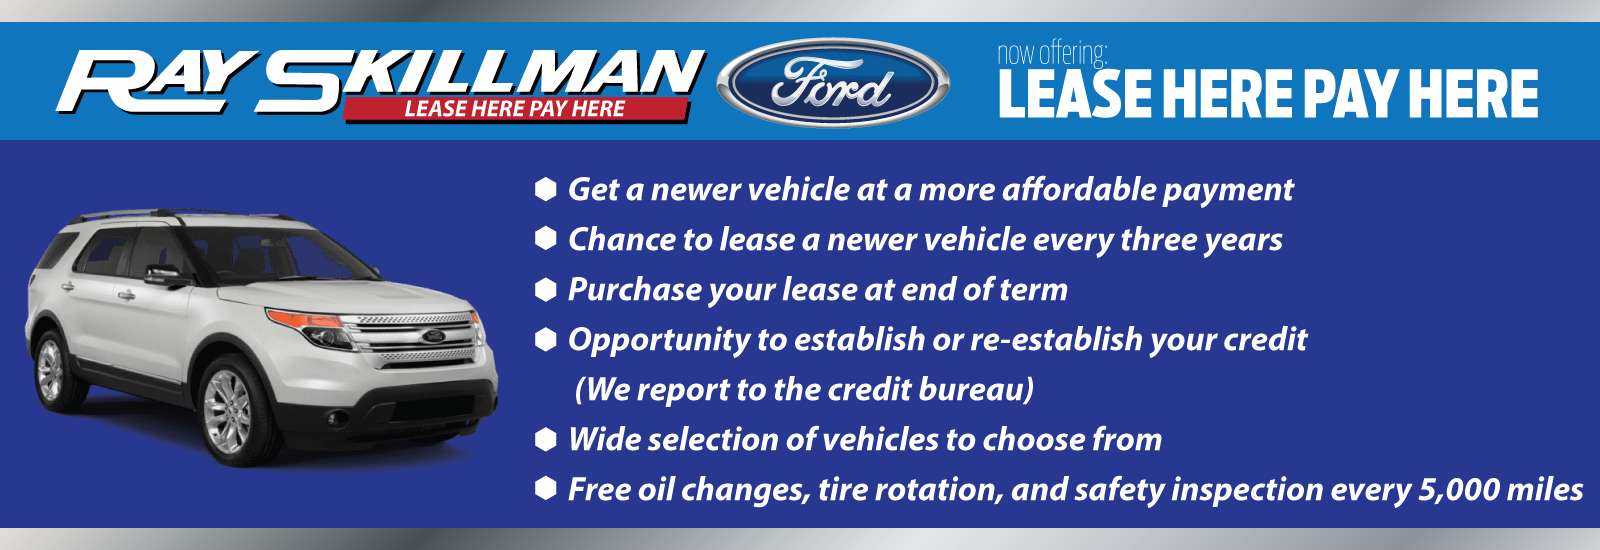 Ray-Skillman-Ford-Lease-Here-Pay-Here-Web-Banner-1600×550